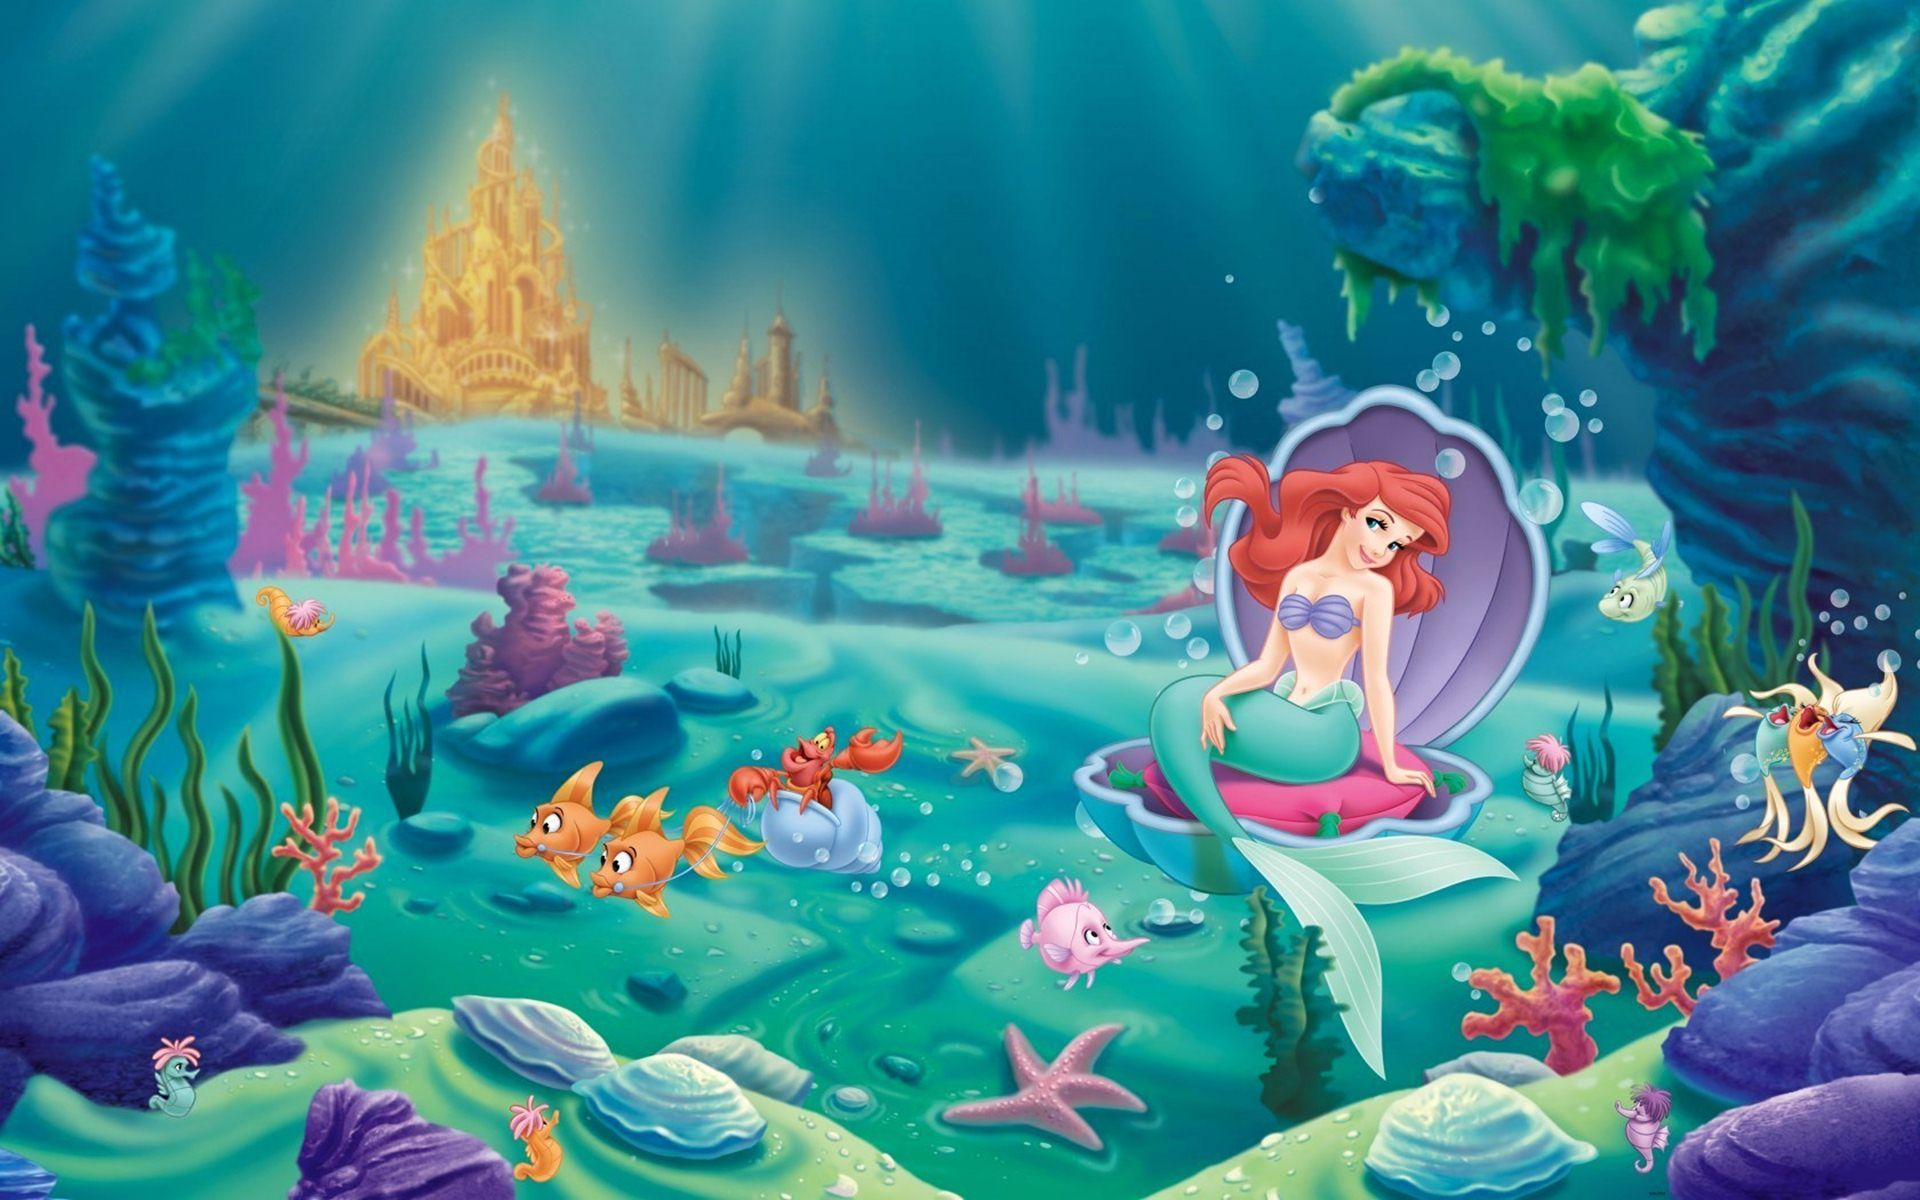 The Little Mermaid Disney Princess Ariel And Castle Of